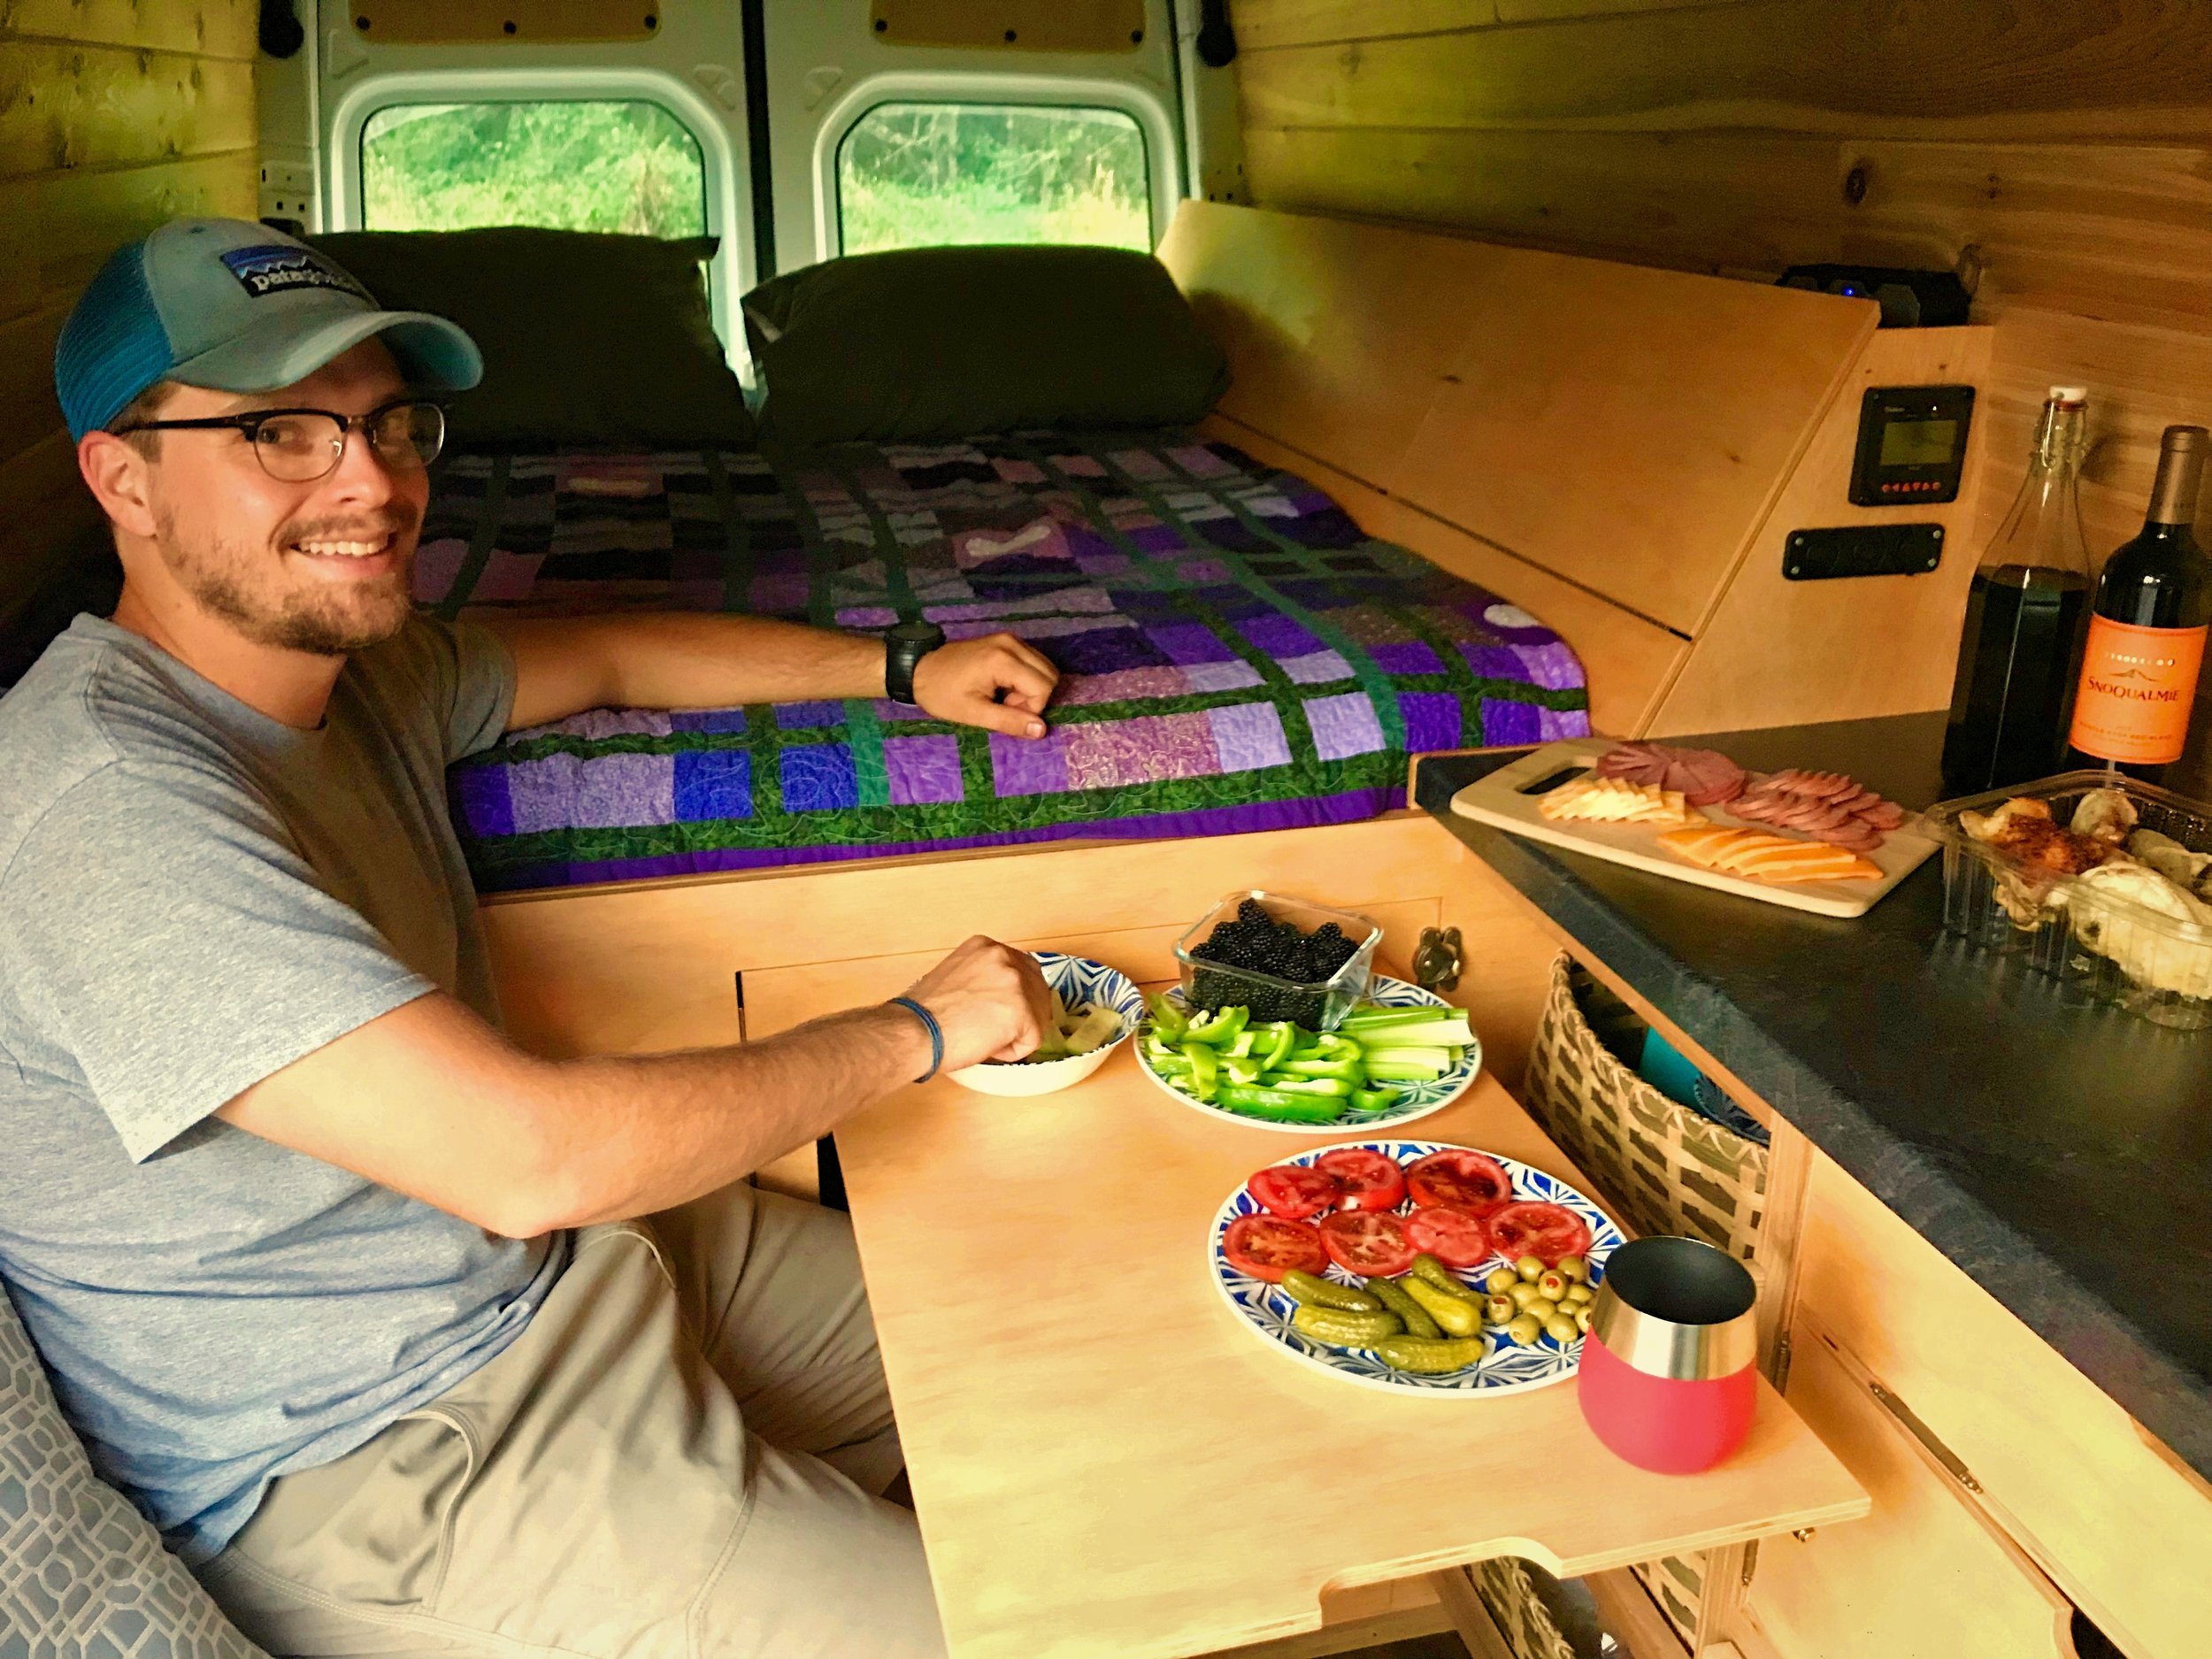 This fold up table, which is built into the door on front of the bed platform, is a great place to eat a home cooked meal.